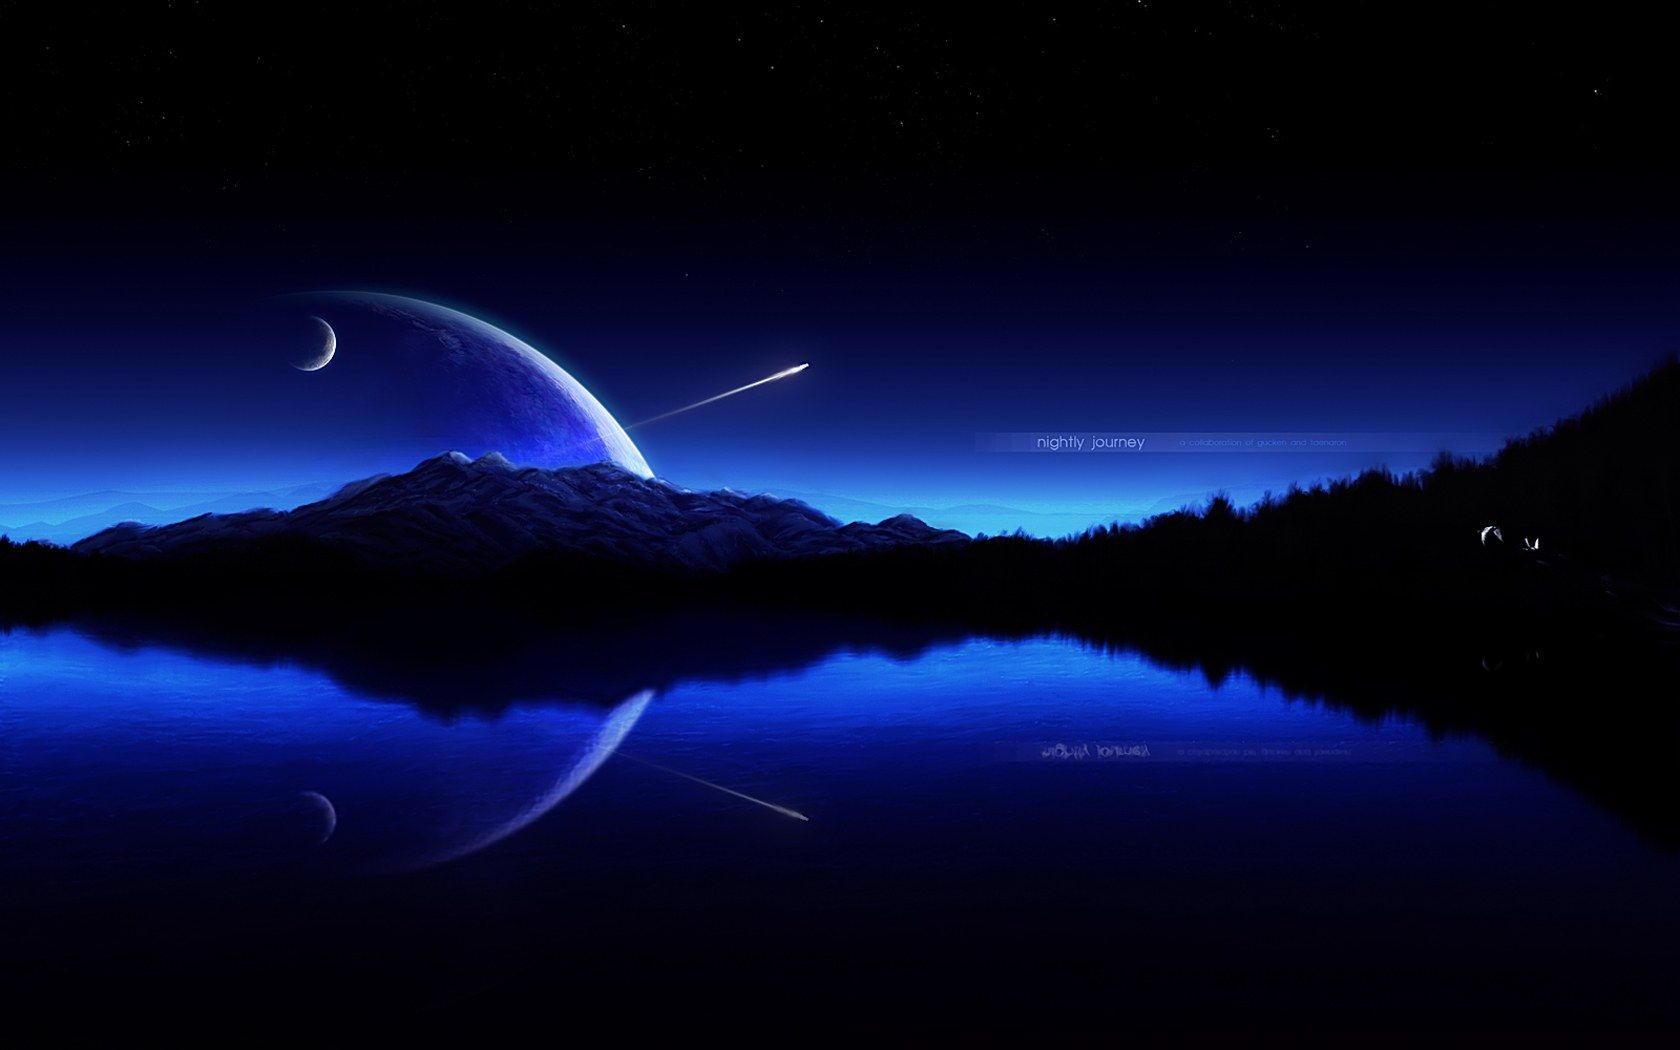 Hd wallpaper universe - Universe And Planets Digital Art Wallpaper Collab Nightly Journey